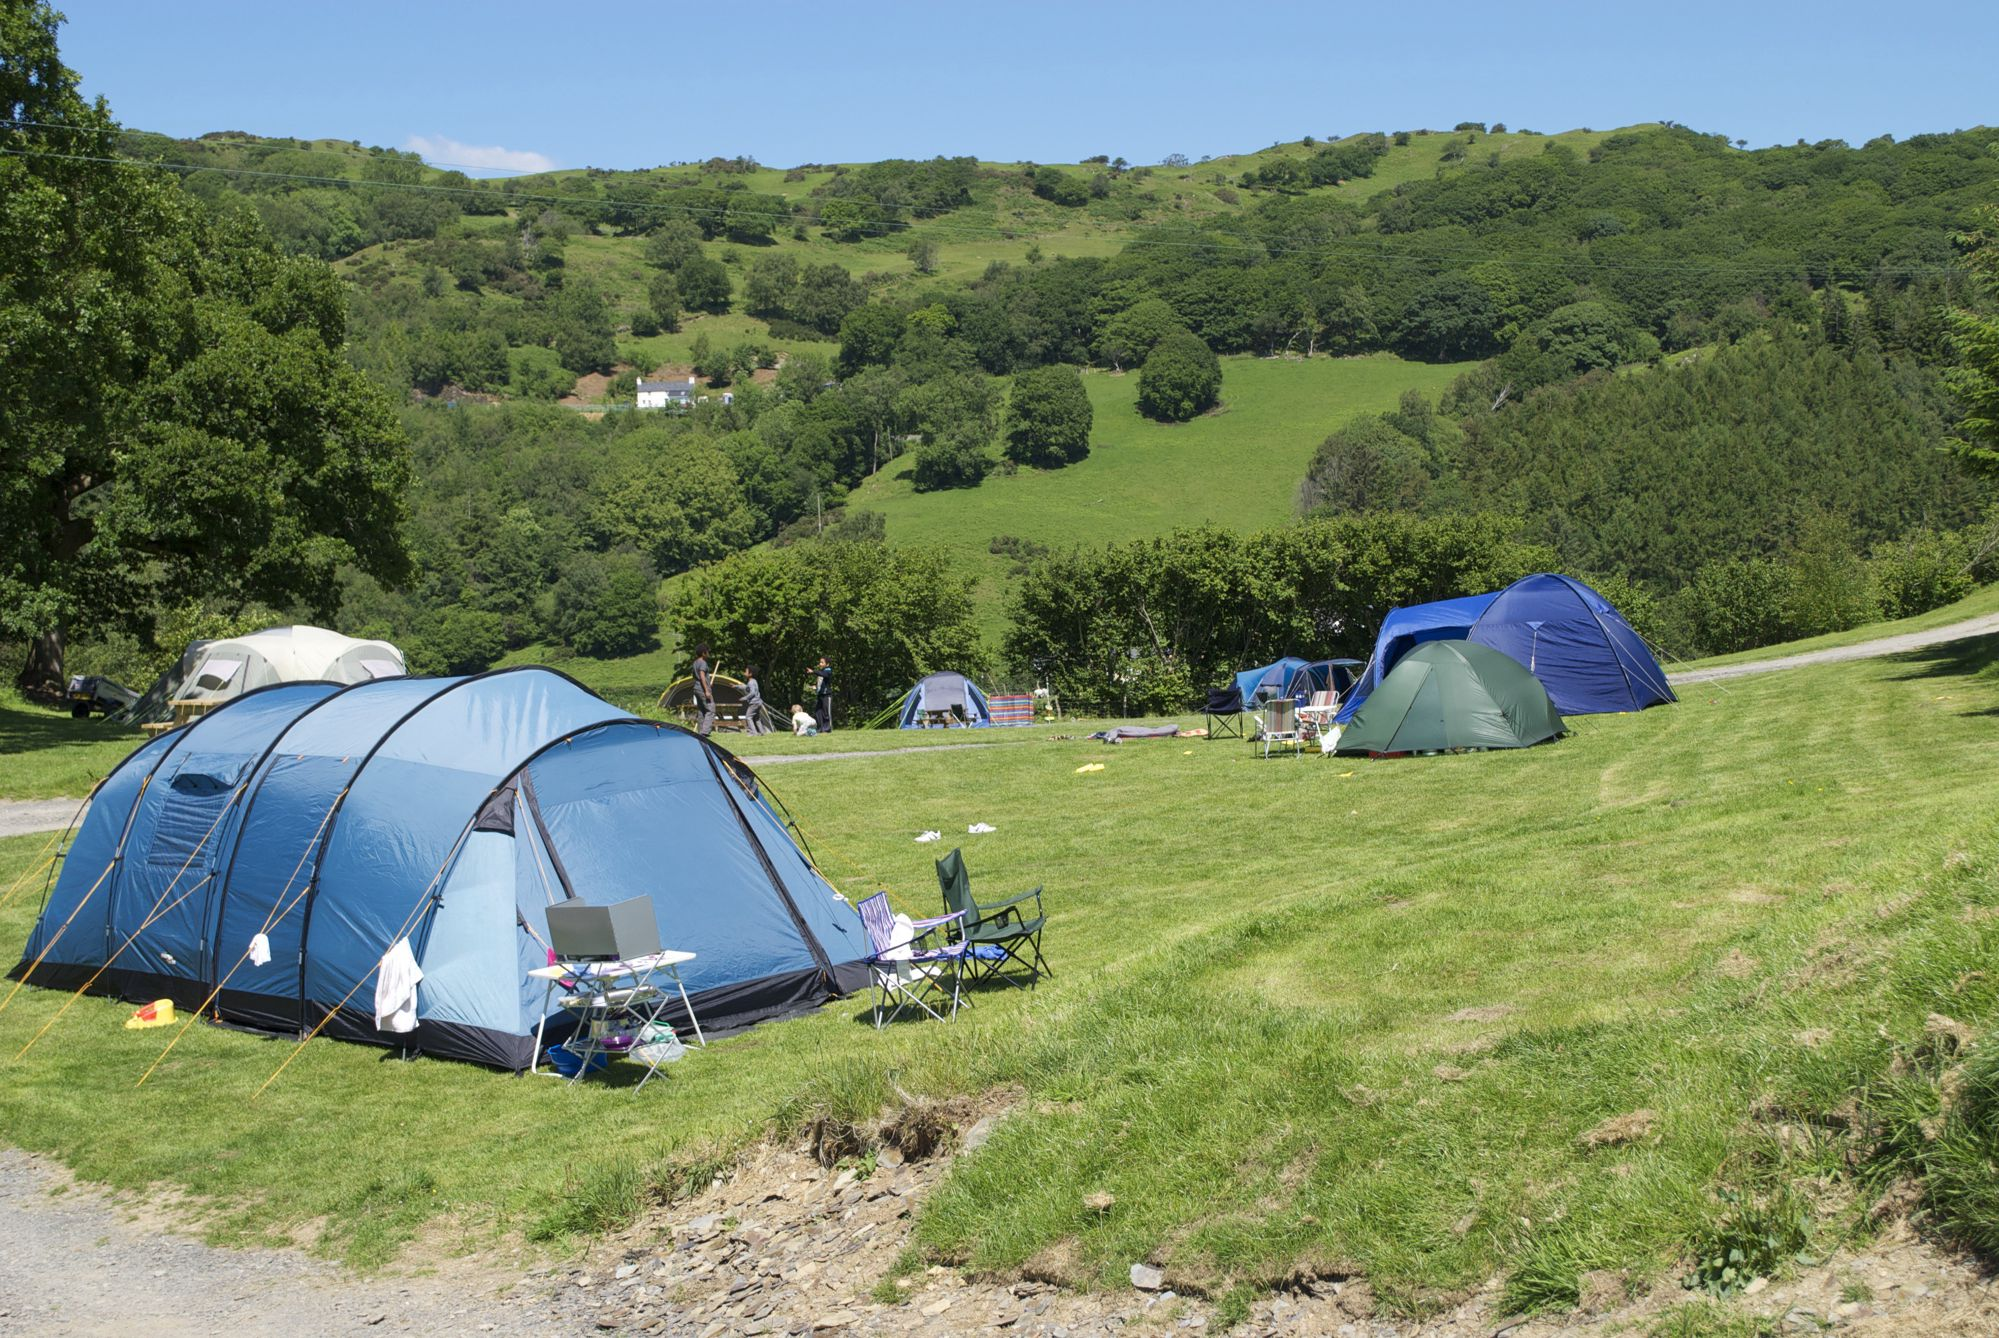 Leave it to your kids' imagination when it comes to this mid-Wales campsite on the edge of Snowdonia National Park. Rocky outcrops and magical valleys. It's a proper fairytale of a site.